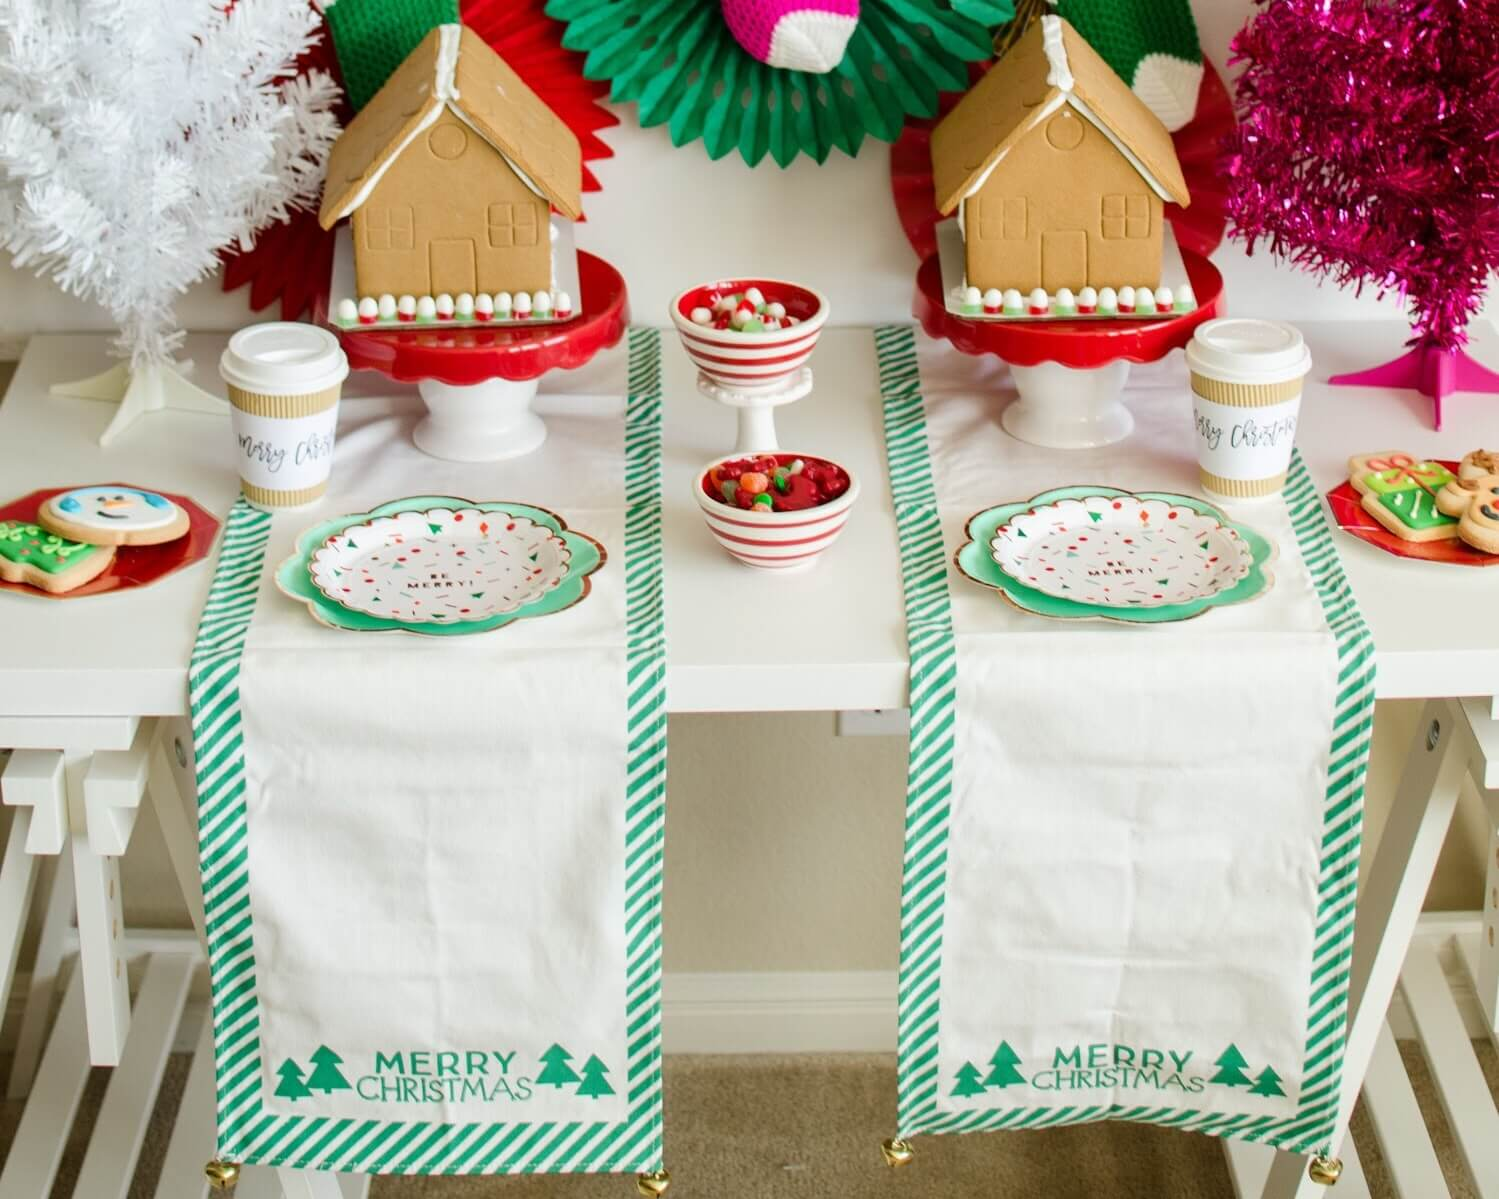 Gingerbread House Decorating Party Tip: Flip a table runner on it's side to create a workspace for each child. See more holiday decorating ideas for kids holiday parties on Mint Event Design www.minteventdesign.com #gingerbreadhouse #holidayparty #holidays #partyideas #christmasparty #holidaypartyideas #kidsparty